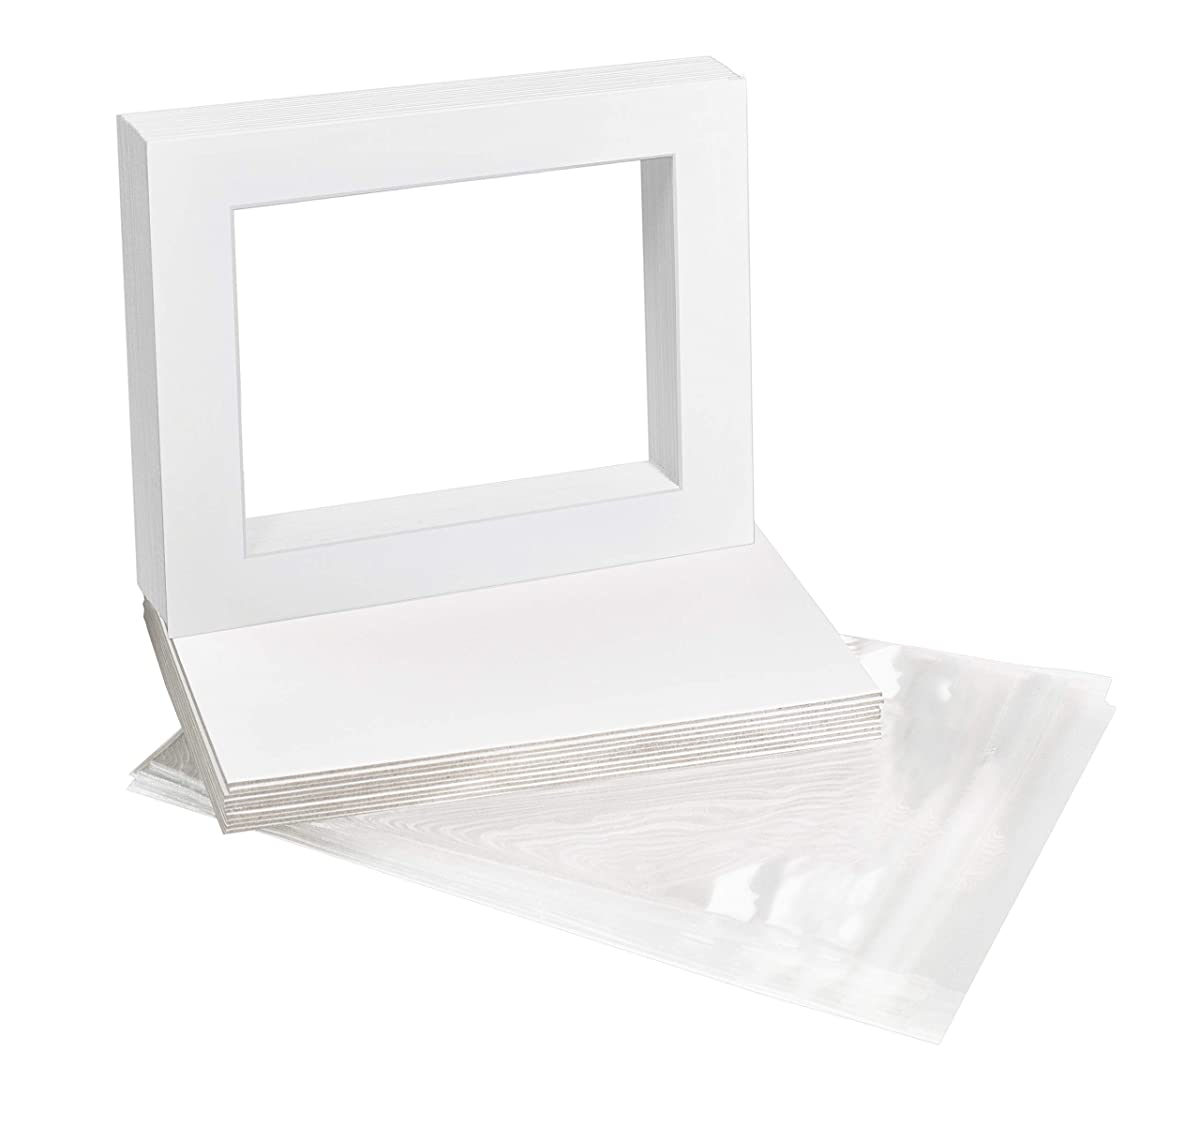 Golden State Art, Pack of 10, 11x14 White Picture Mat Full Set - Fit 8.5x11 Photo/Certificate - High Premier Acid Free Bevel Pre-Cut White Core Mattes - Includes 10 Backing Backer Board & Clear Bags